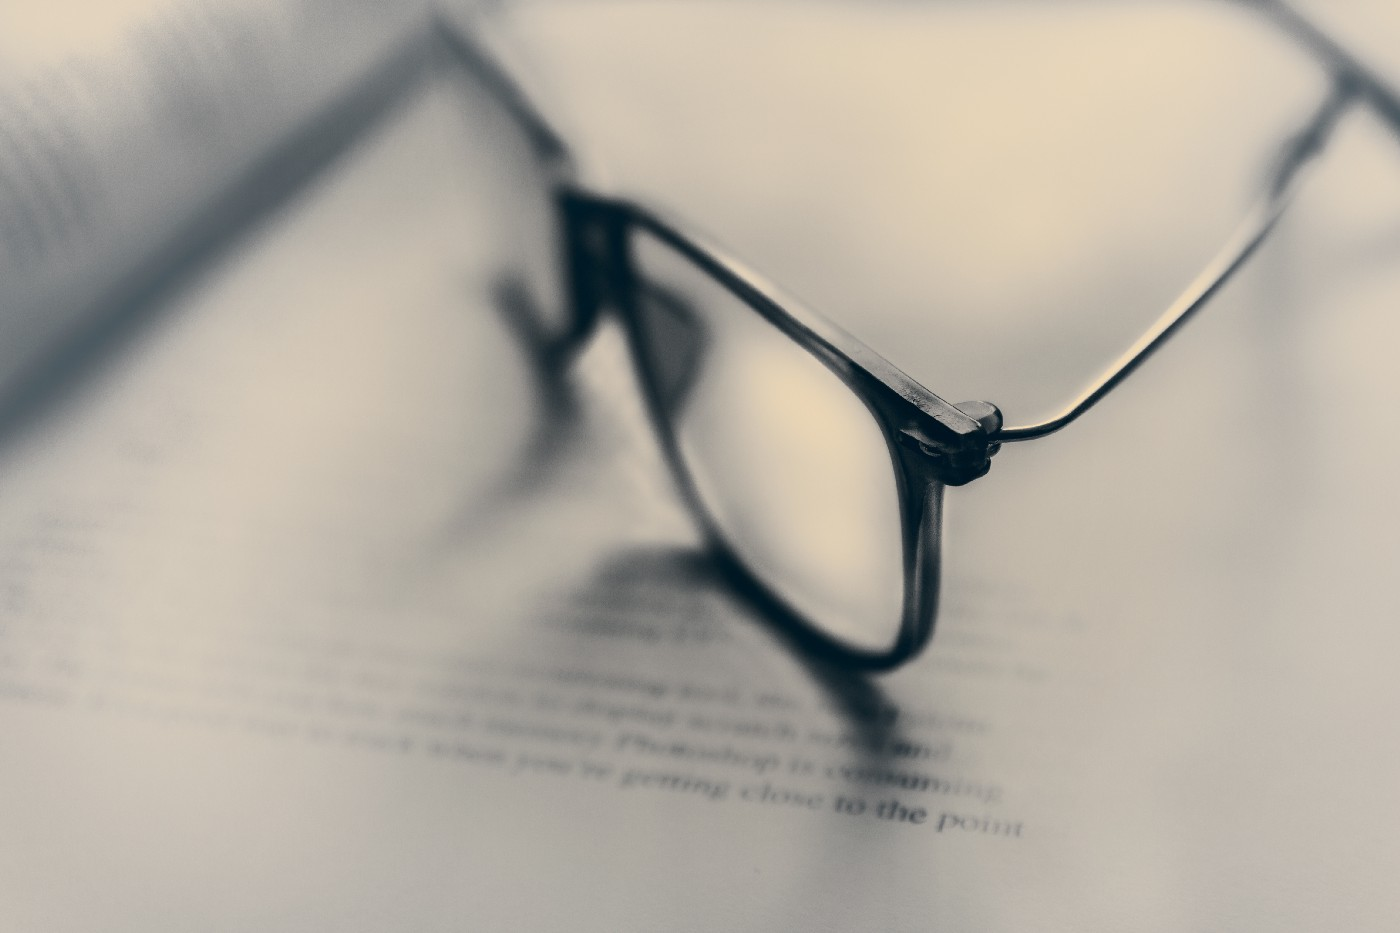 Image of glasses on a book.